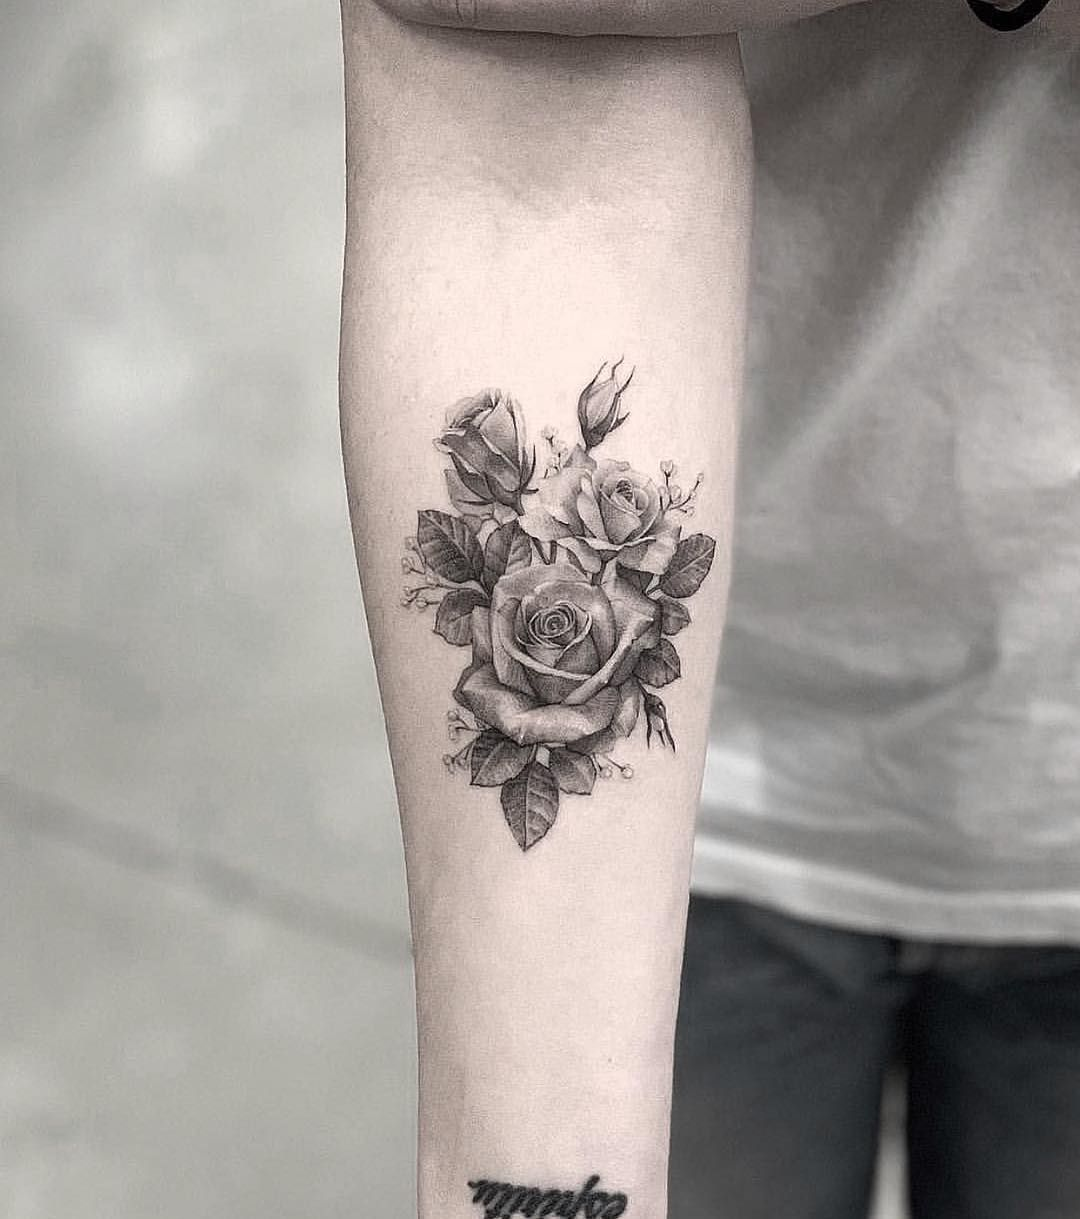 65 Tattoo Design Ideas For Girls Click Here For Larger Image Rose Tattoo Arm Tattoos Rose Tattoos For Women Tattoos For Women Flowers Inspirational Tattoos